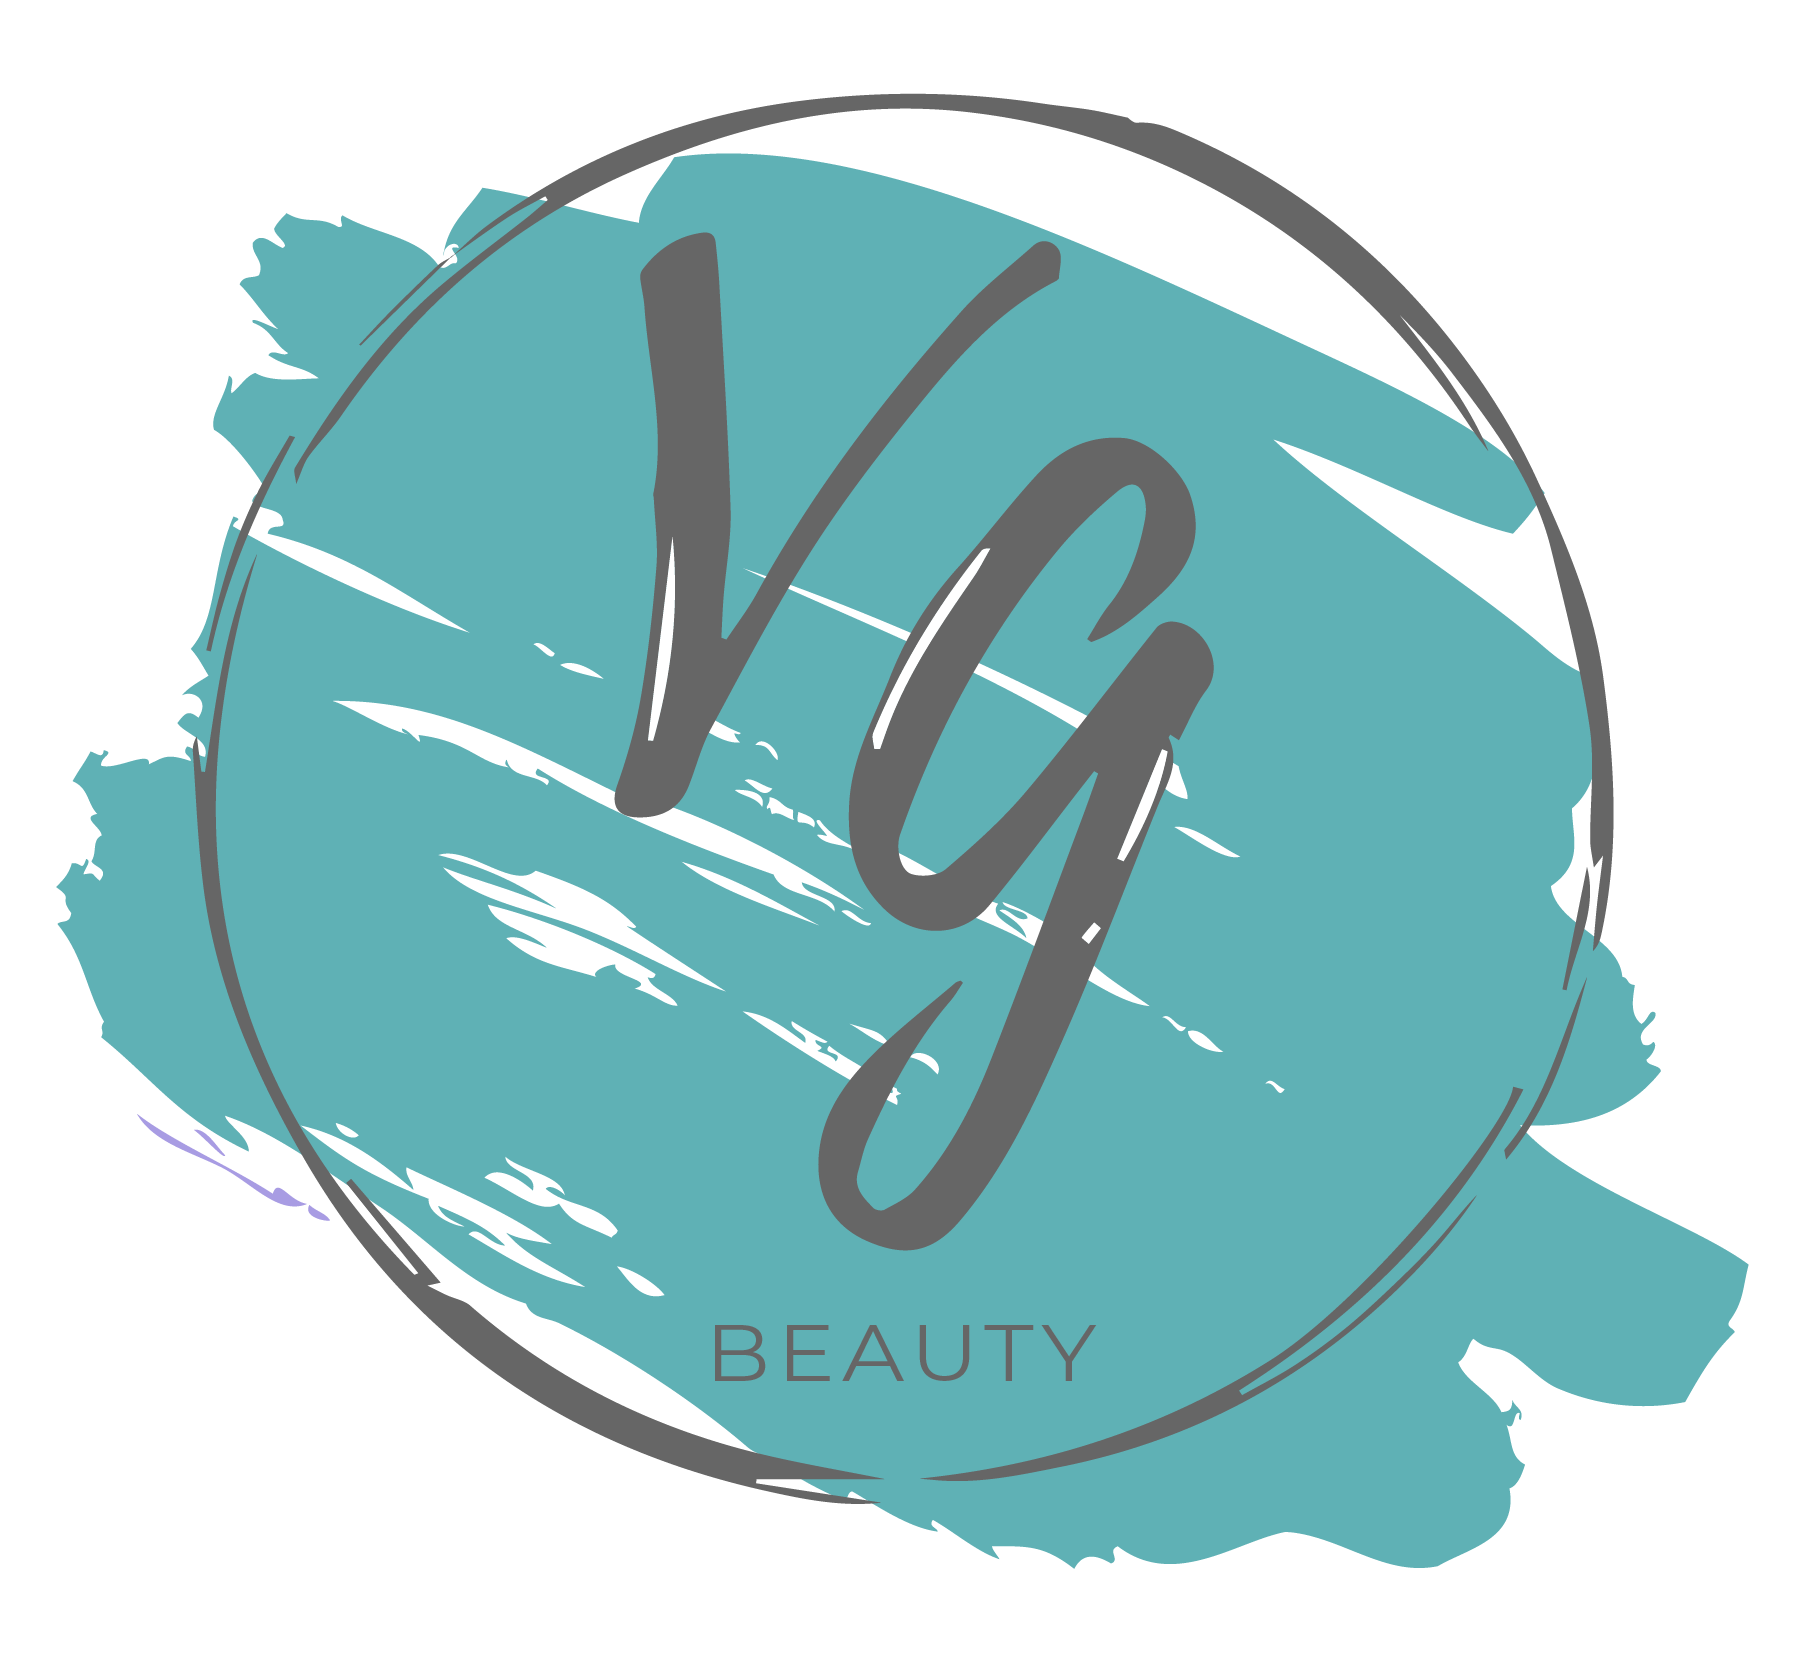 Vesper Gray Skin, Lash and Nail studio logo